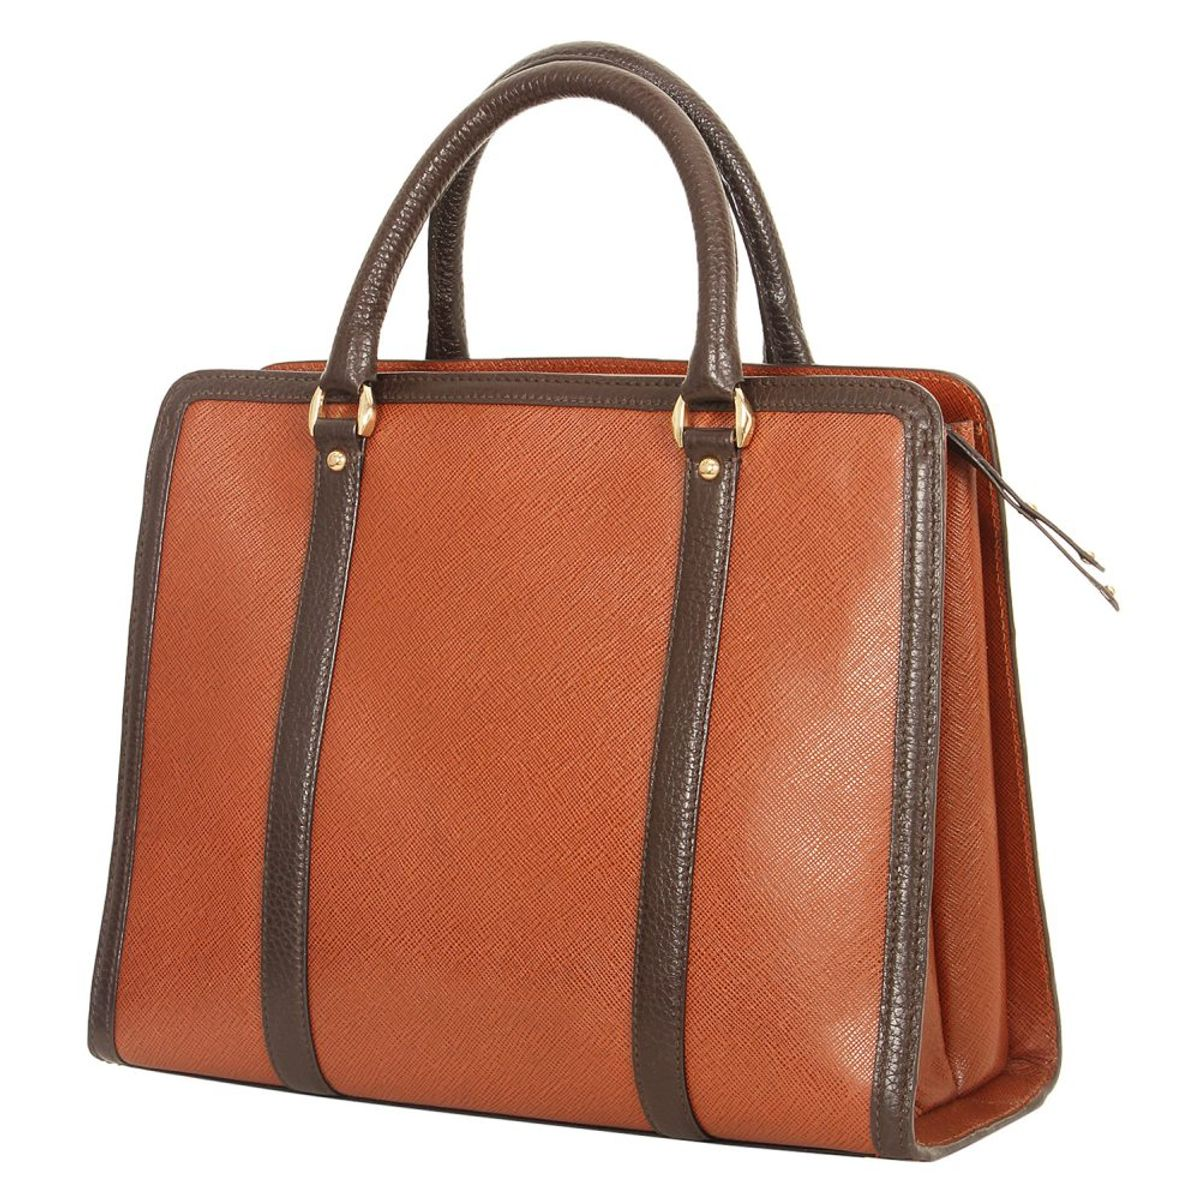 Image result for the tote bag by da milano